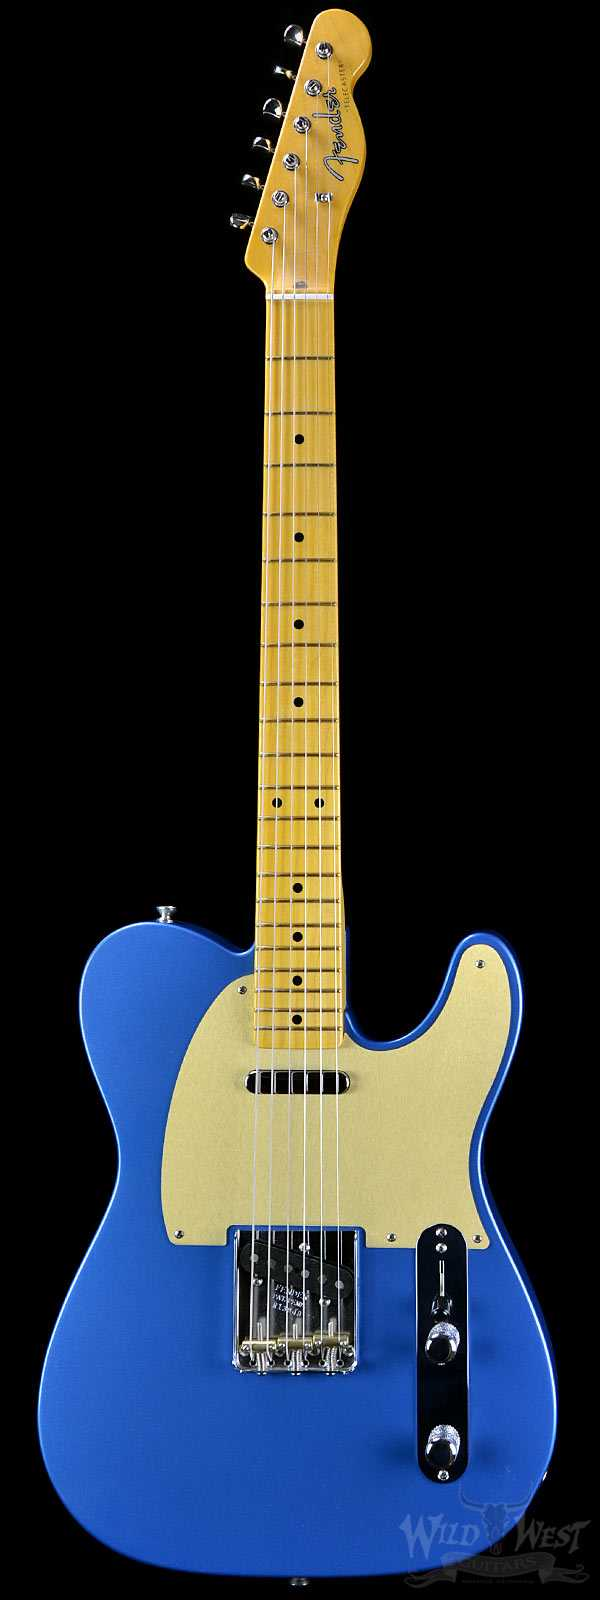 Fender 1956 Telecaster NOS Lake Placid Blue with Gold Anodized Pickguard - Preowned